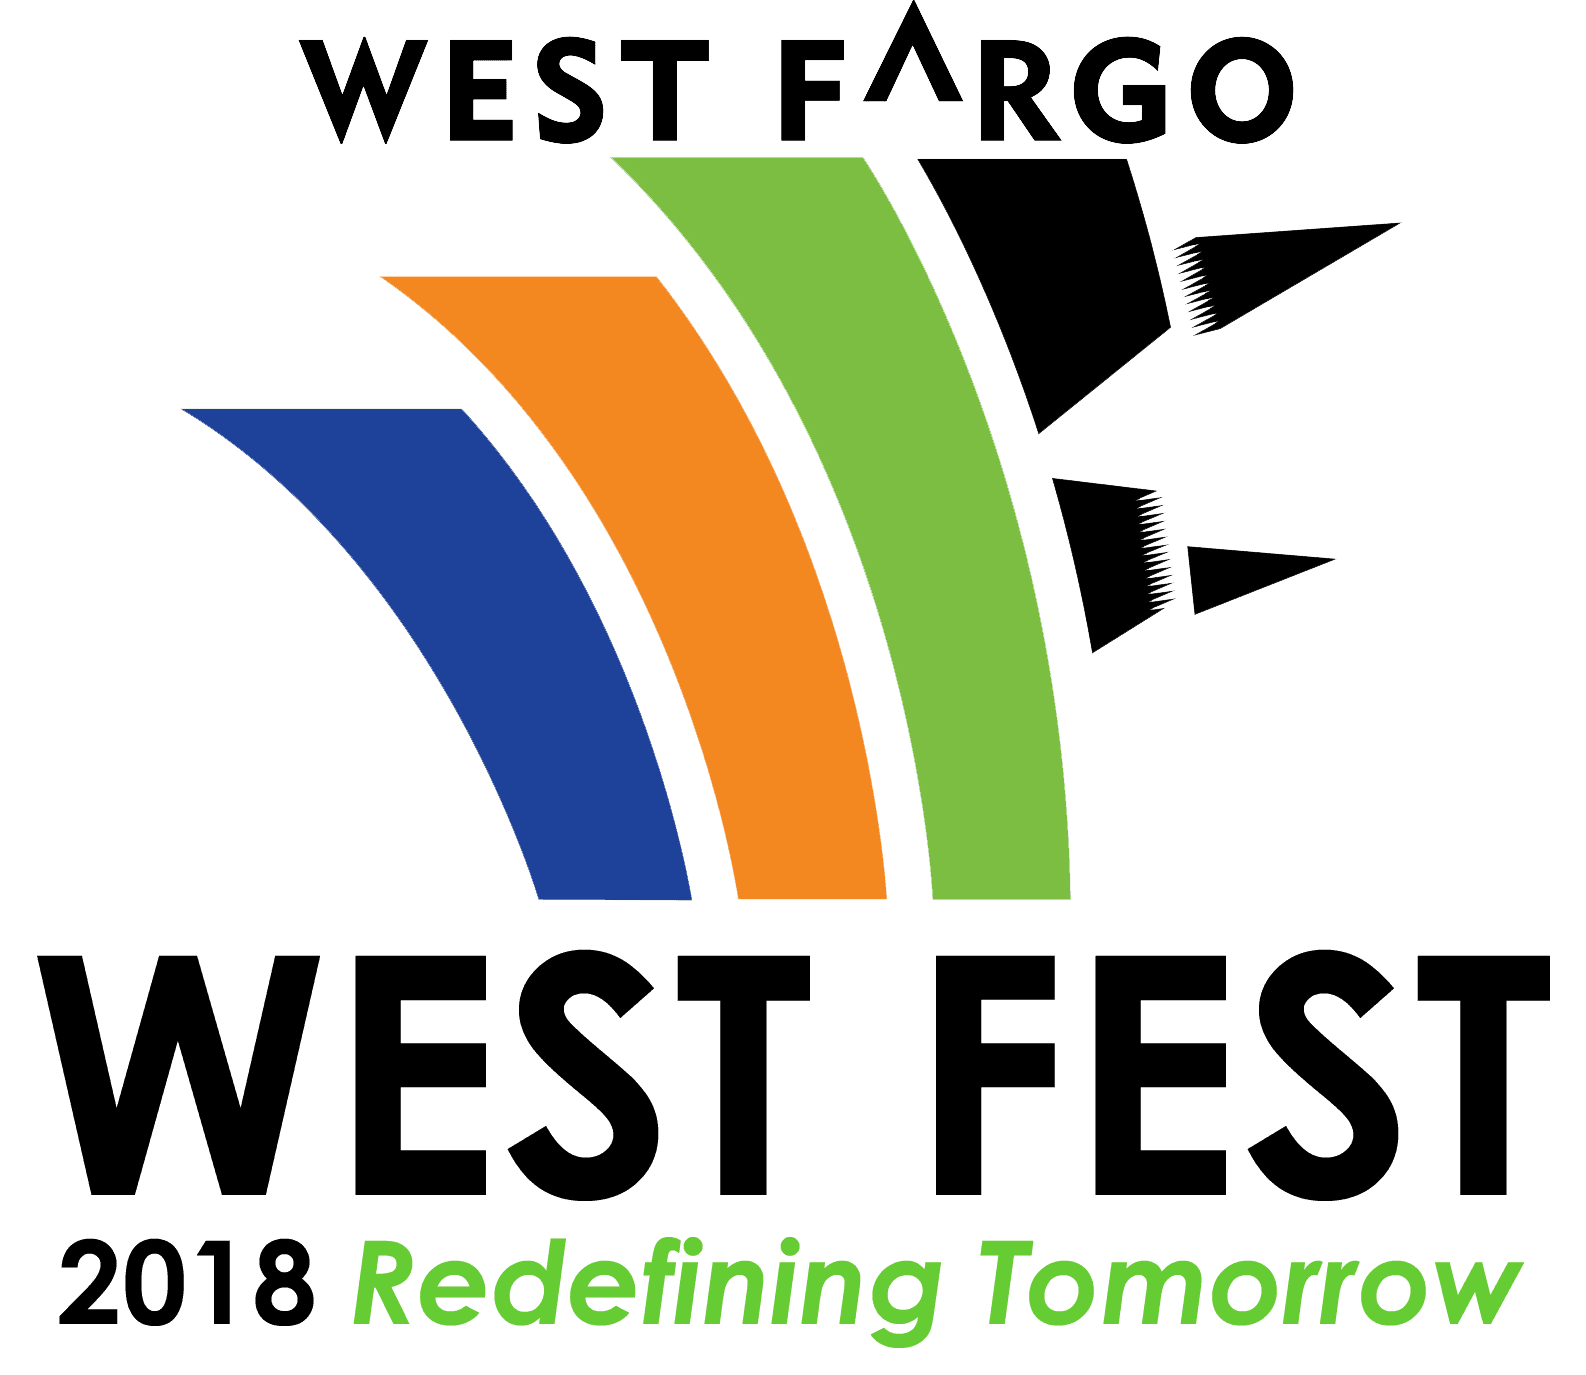 West Fest_CMYK_trans_2018_Redefining Tomorrow_CVB